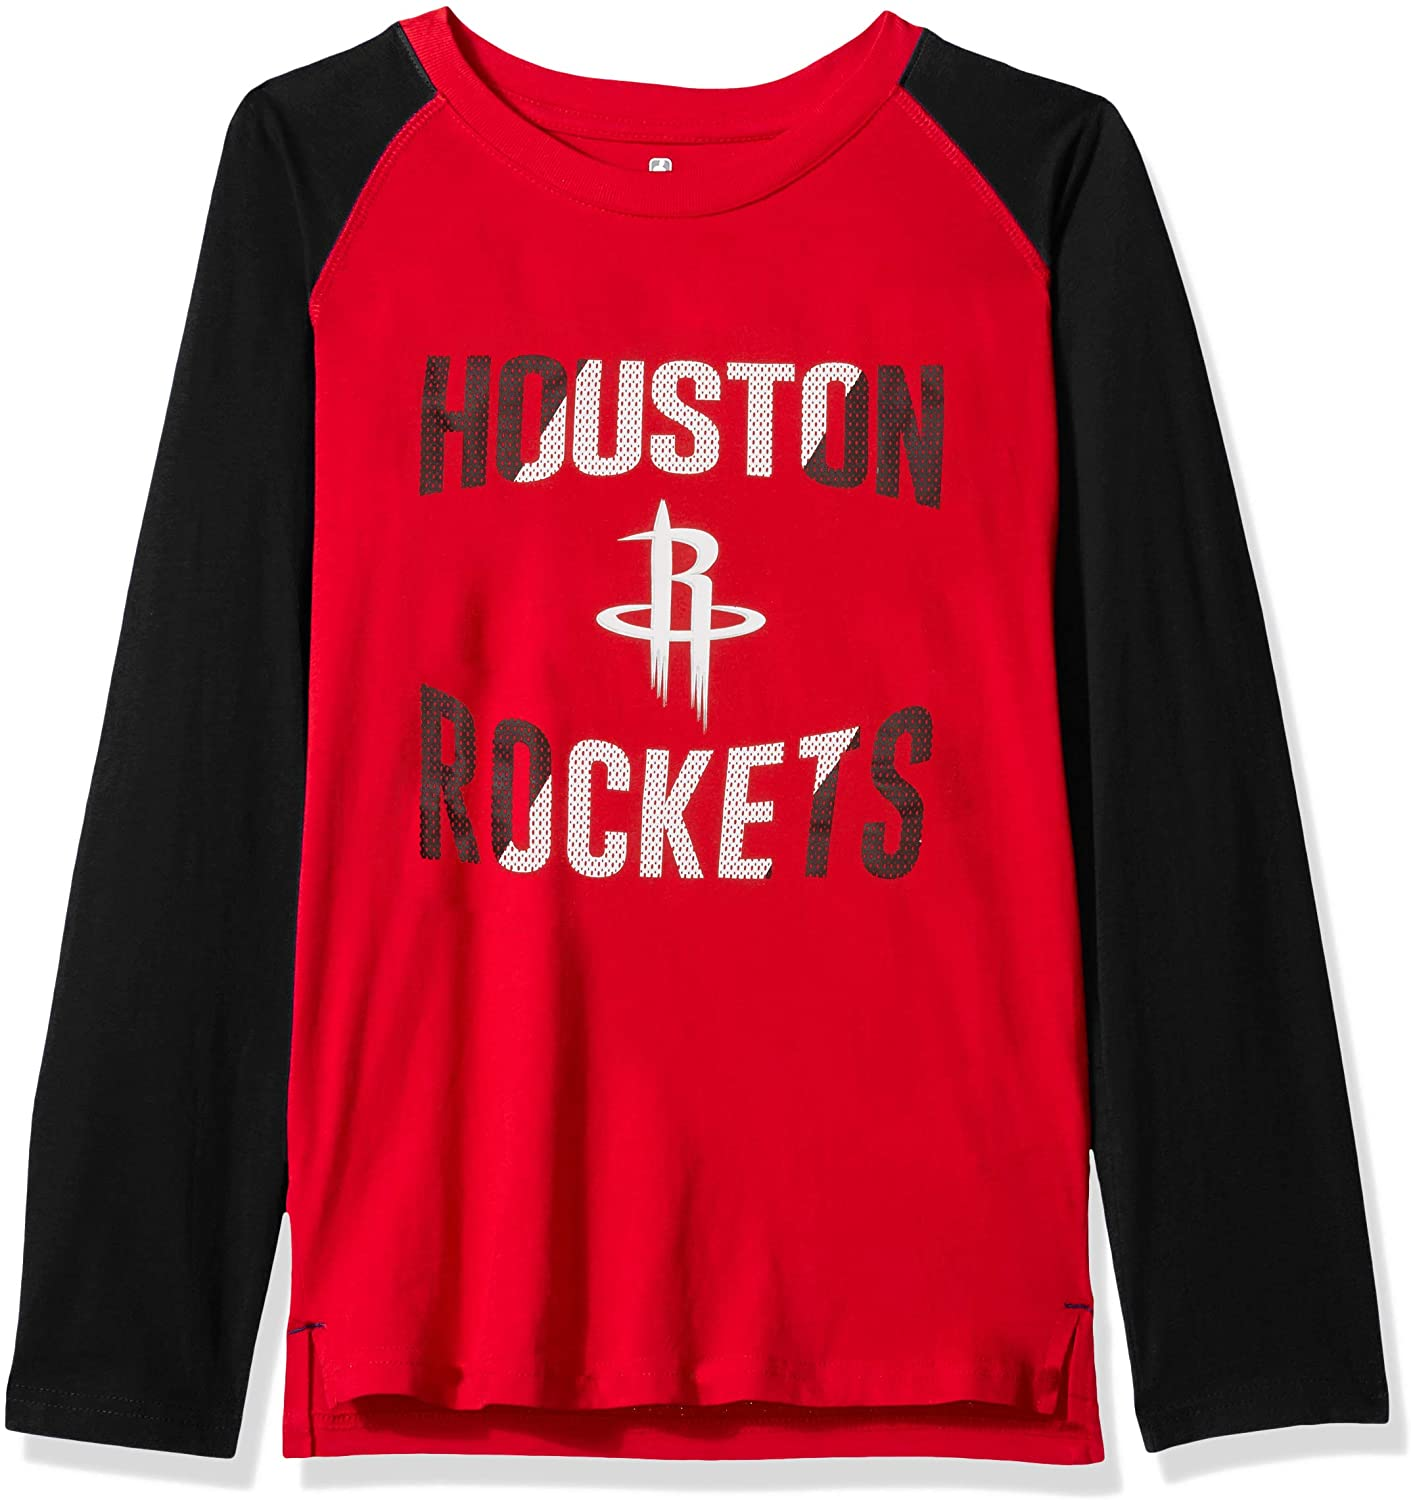 NBA by Outerstuff NBA Youth Boys Houston Rockets Free Throw Long Sleeve Fashion Tee, Red, Youth Medium(10-12)